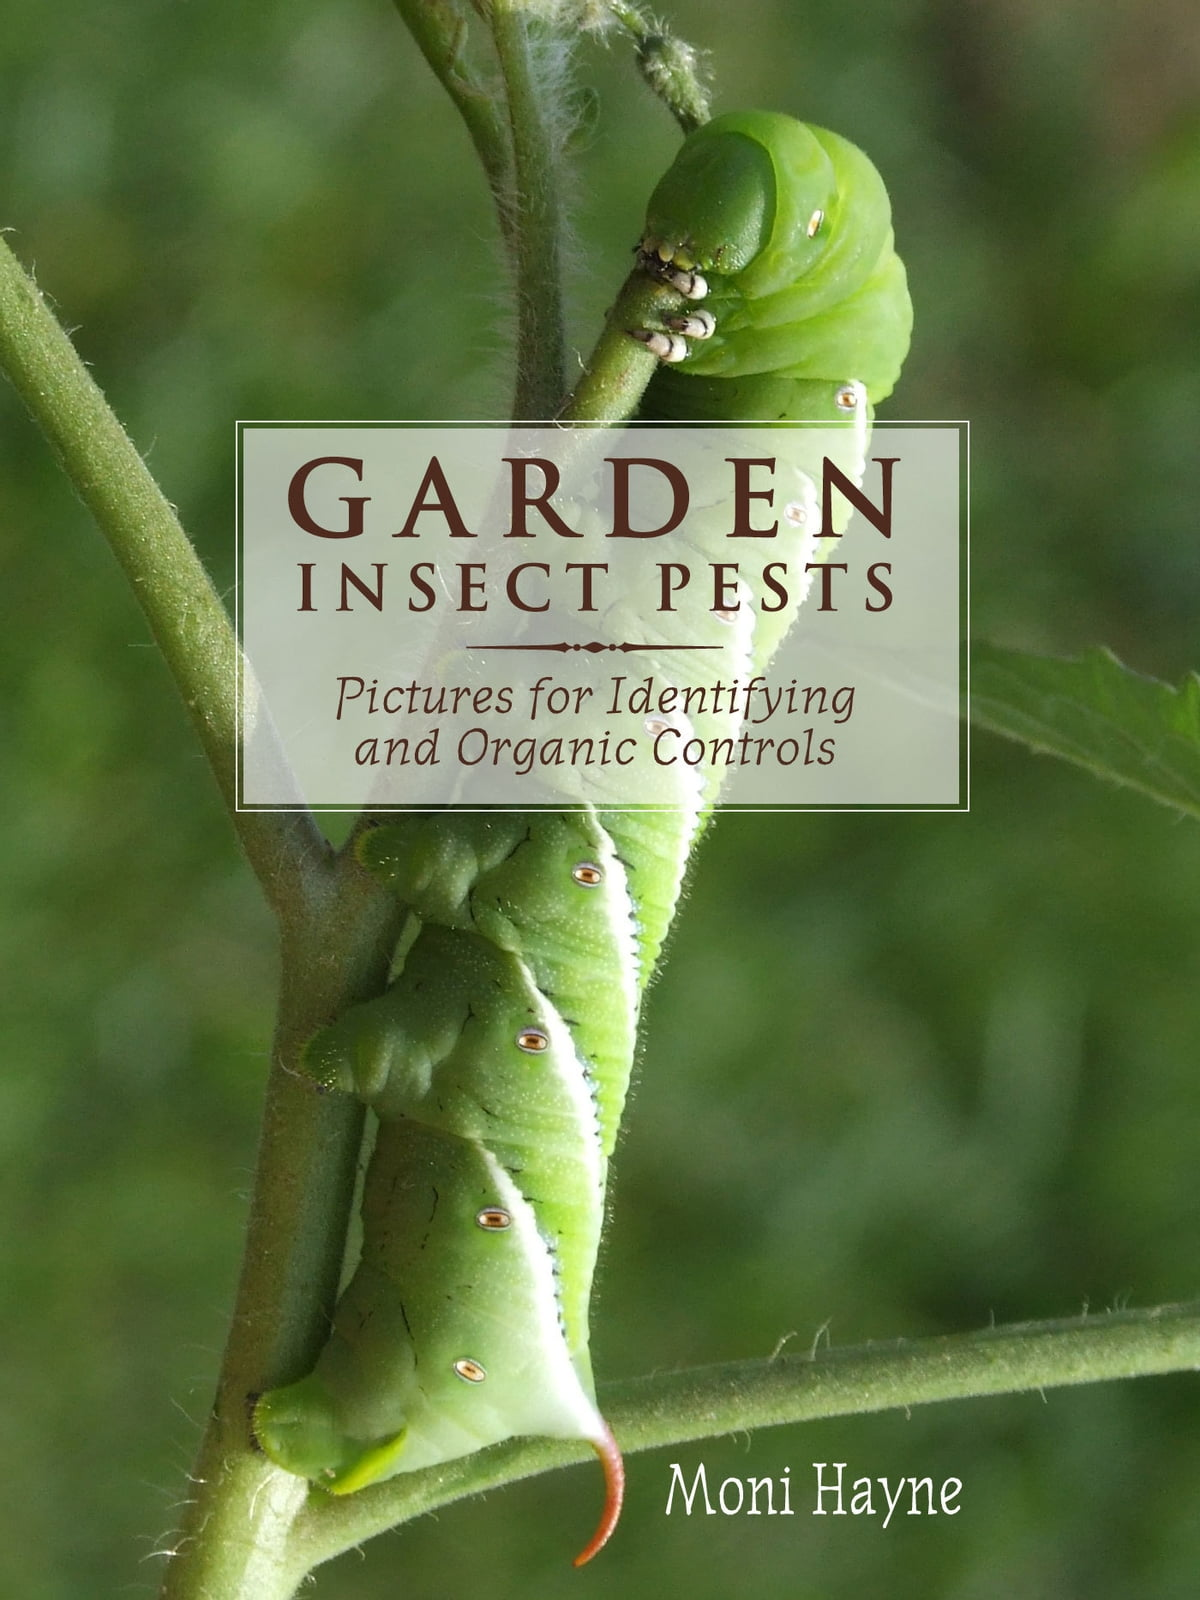 Garden Insect Pests of North America: Pictures for Identifying and Organic  Controls ebook by Moni Hayne - Rakuten Kobo